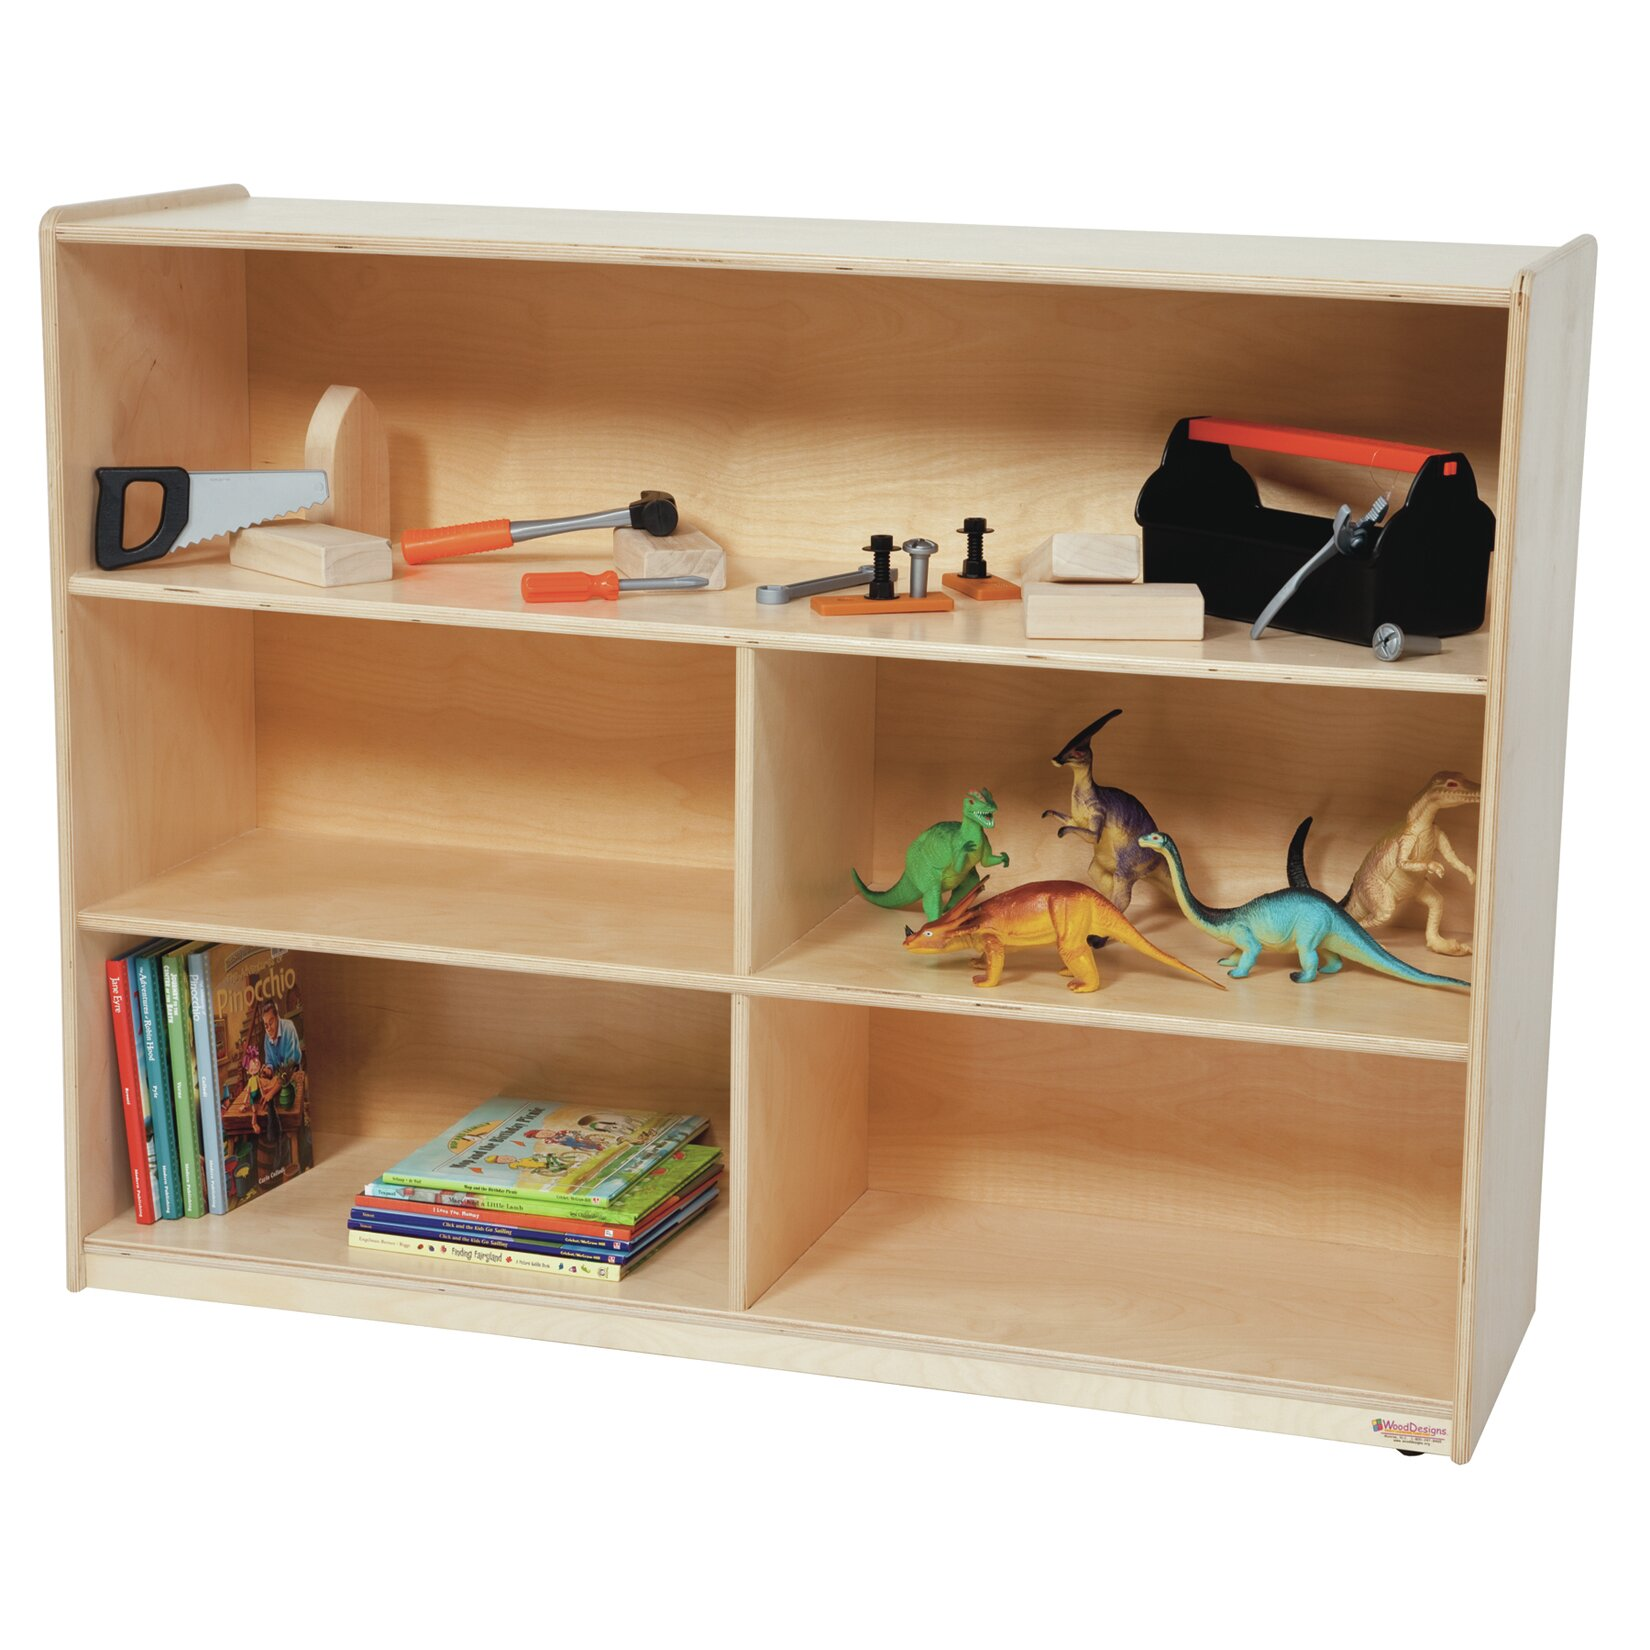 Wood Designs 8 Compartment Shelving Unit With Casters Wayfair